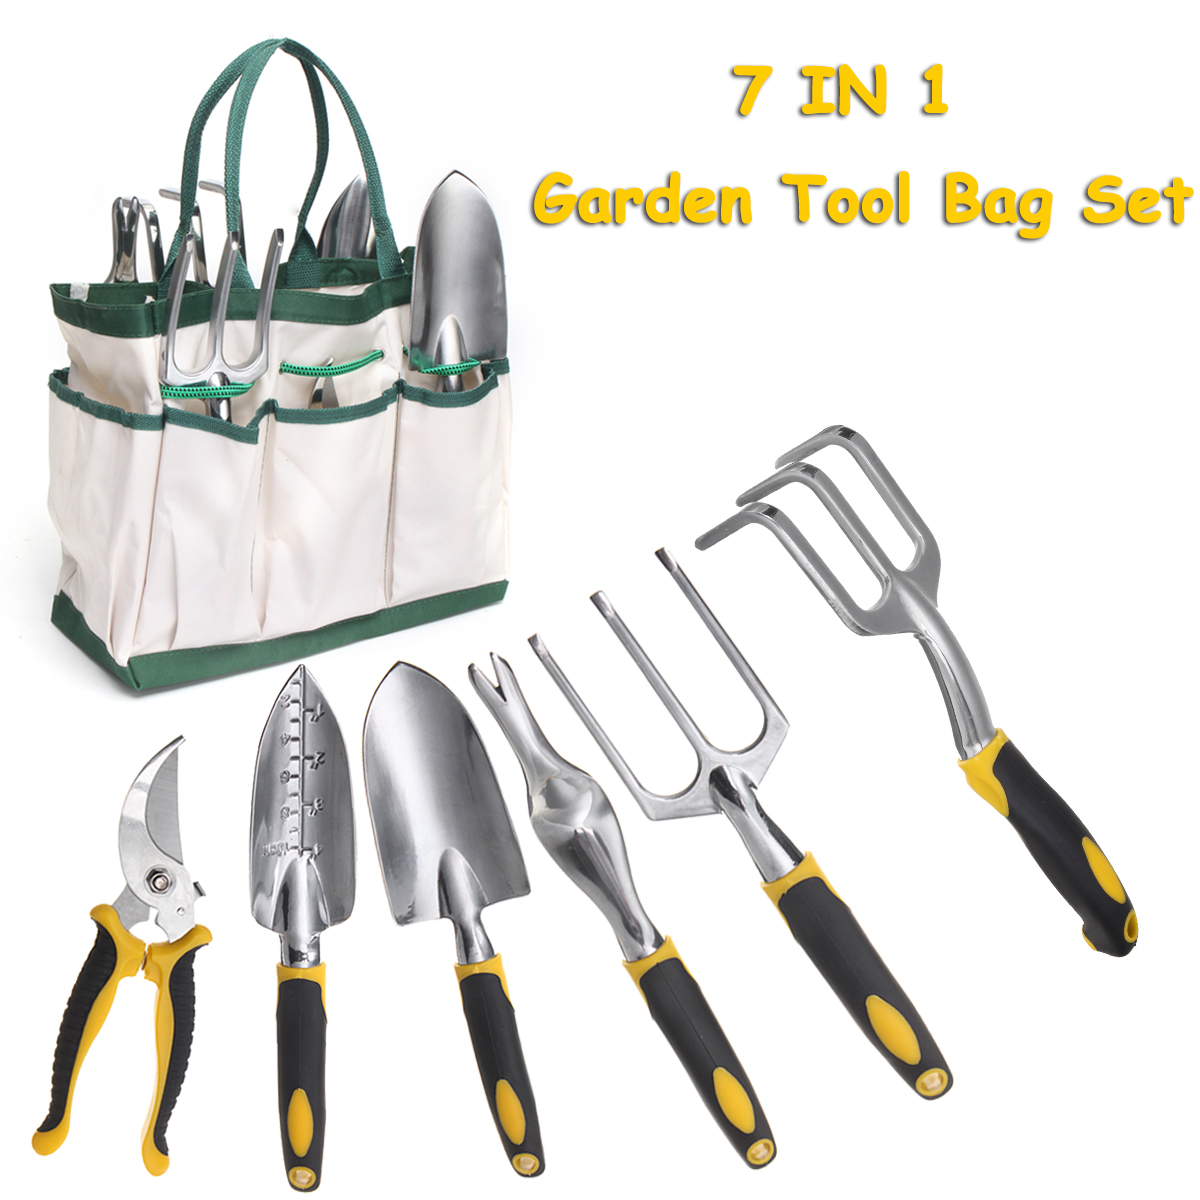 7Pcs Garden Tool Set Stainless Steel Tool Set Planting Tools Pliers with Folding Bag Weeding Fork Trowel Soil Scoop Cultivator7Pcs Garden Tool Set Stainless Steel Tool Set Planting Tools Pliers with Folding Bag Weeding Fork Trowel Soil Scoop Cultivator